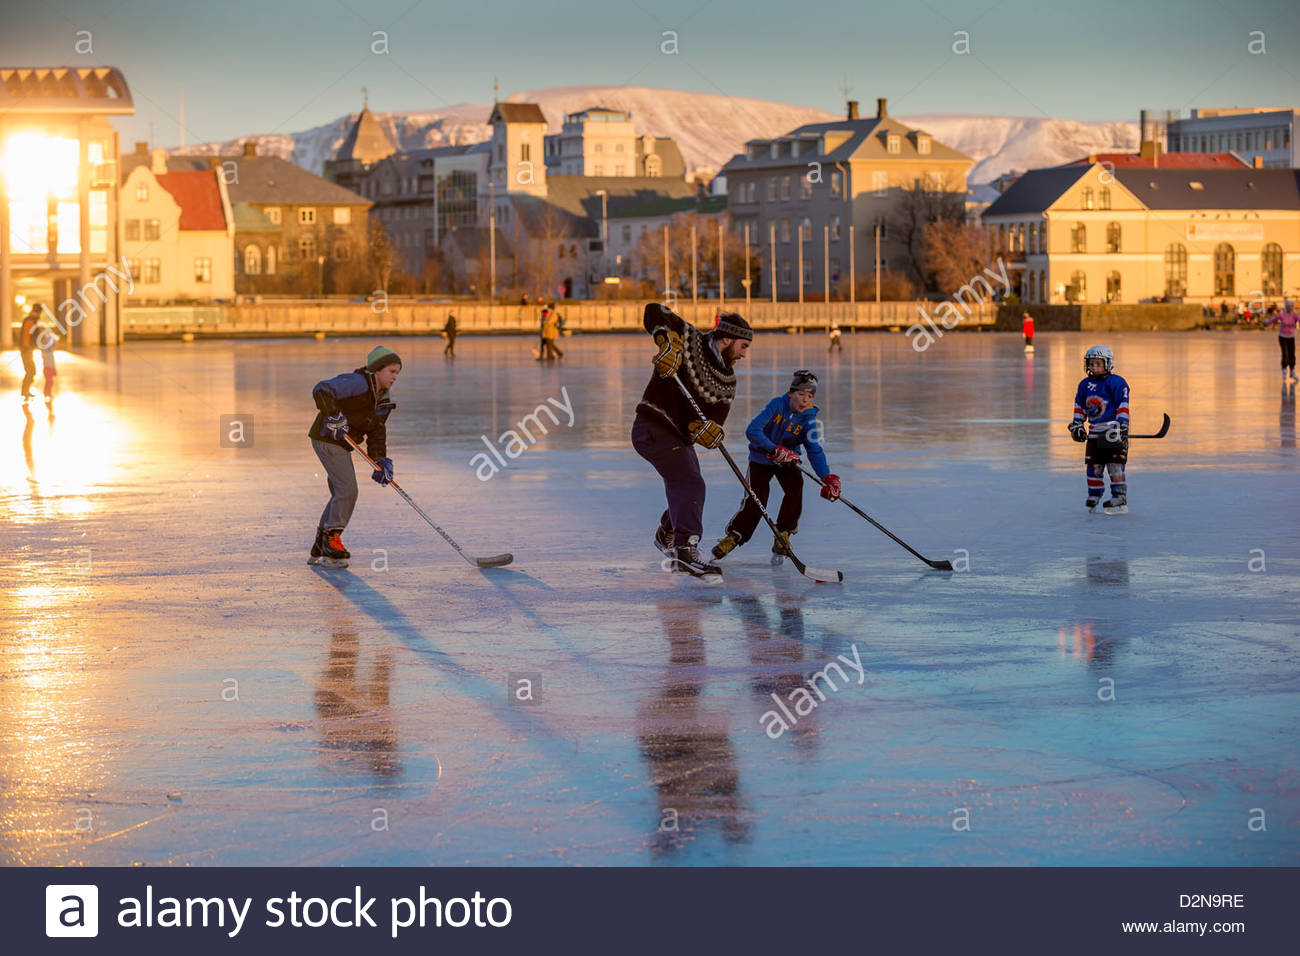 Drangey Sauðárkrókur, Playing ice hockey on the pond in Reykjavik, Iceland. Tjornin is ...